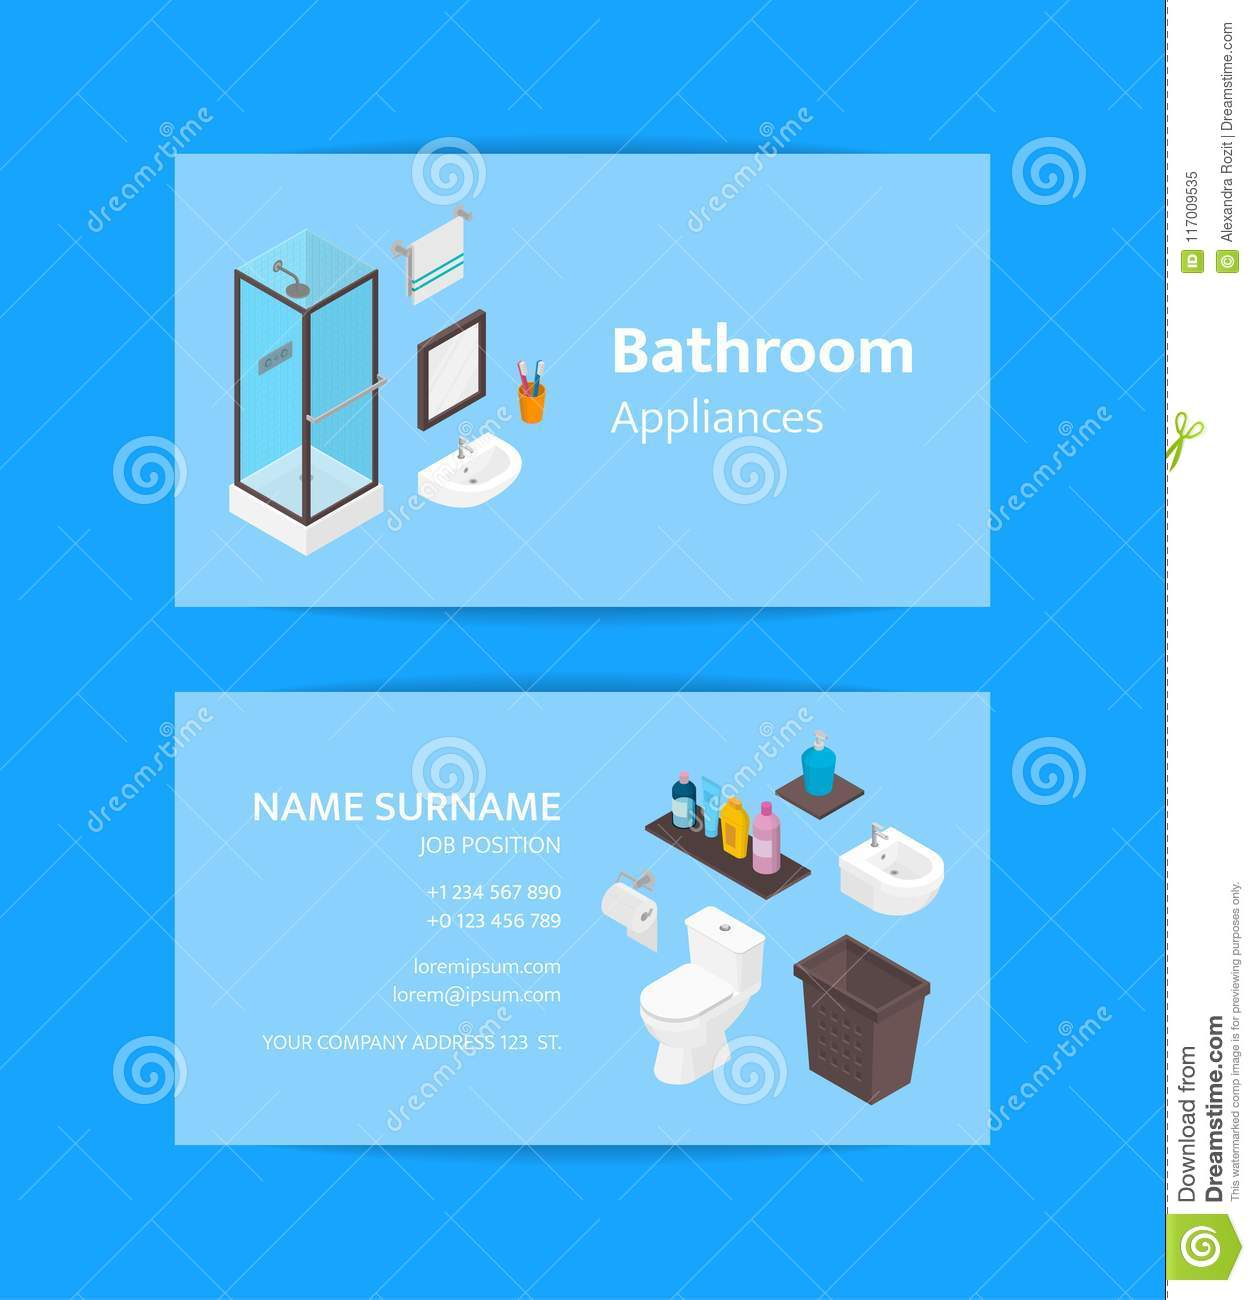 Vector Business Card Template For Bathroom Appliances And